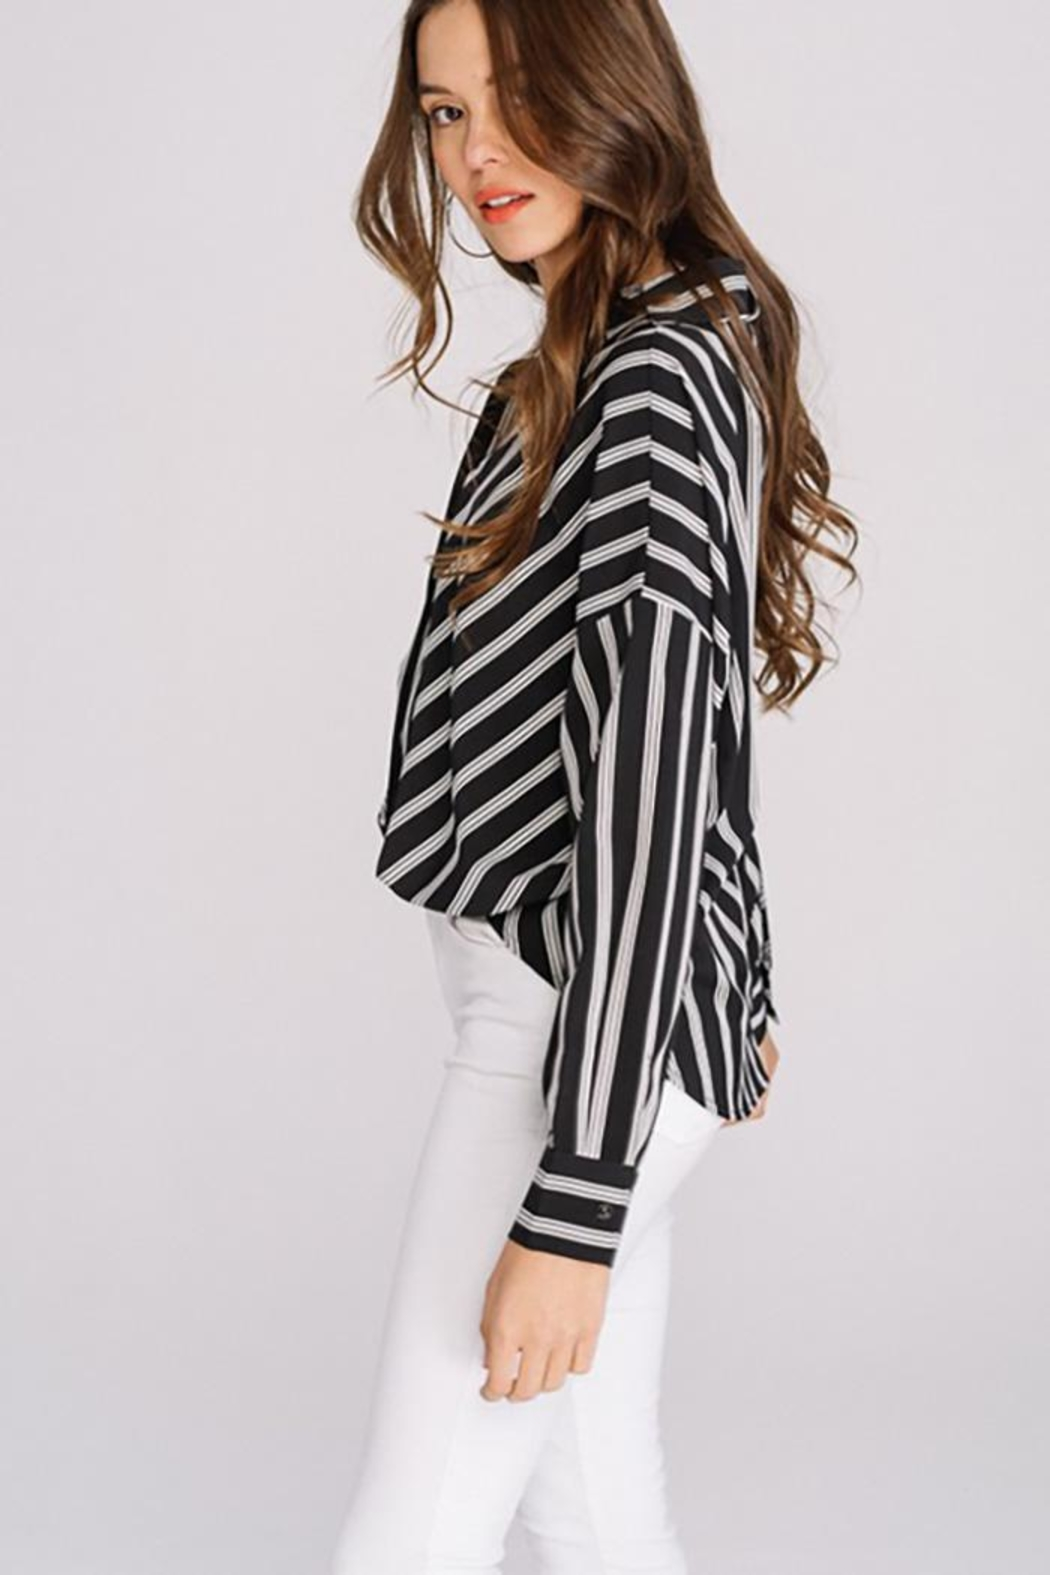 Main Strip Striped Long Sleeve - Front Full Image